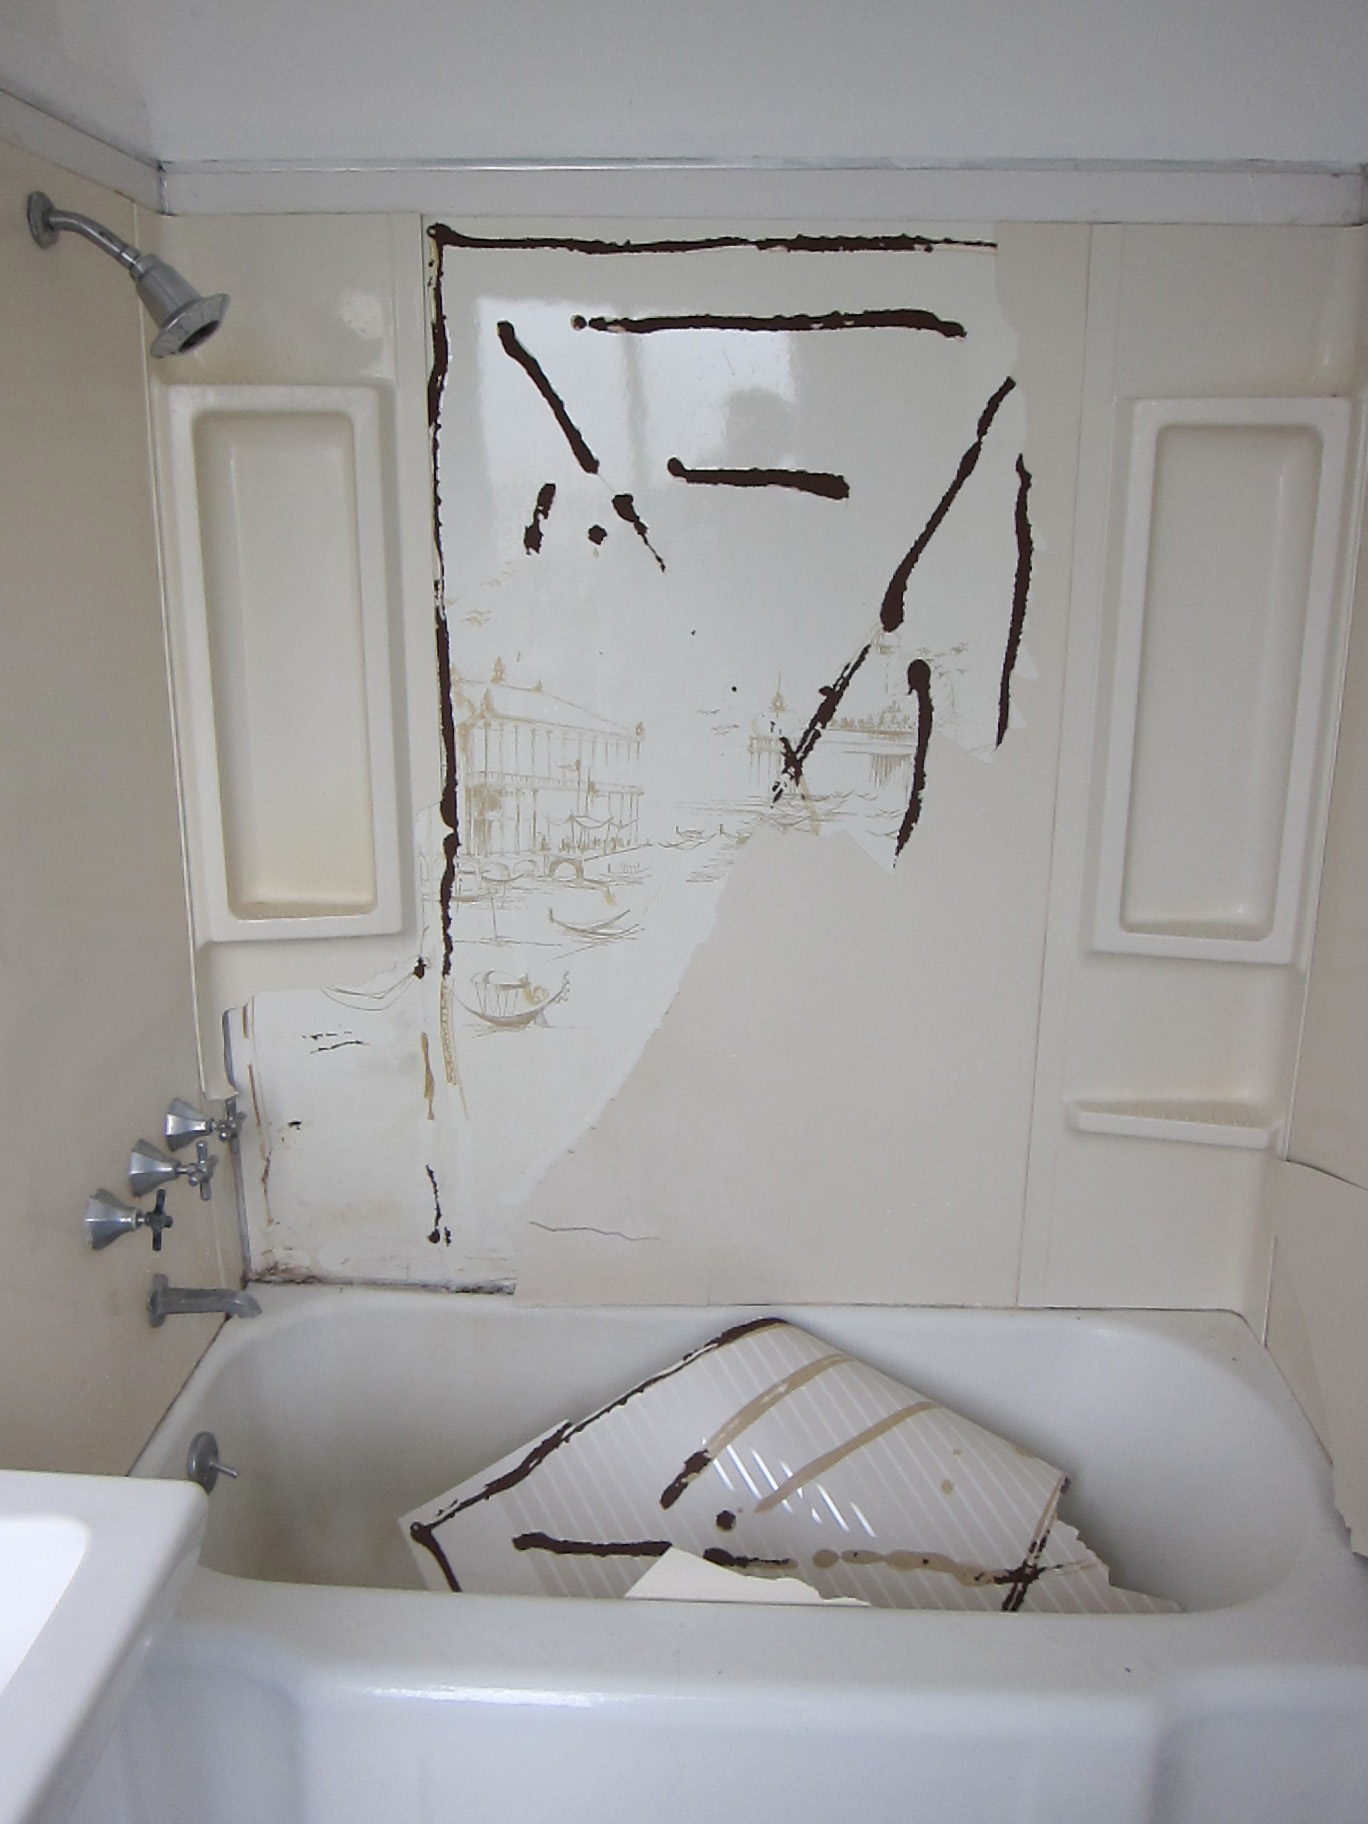 Lovely Bathtub Refinishing Company Tiny Bathroom Refinishers Solid Bathtub Repair Refinishing Young Surface Refinishing BrownTub Reglazing Cost Can You Paint Shower Tile. Yes You Can Paint A Tub Or Shower ..